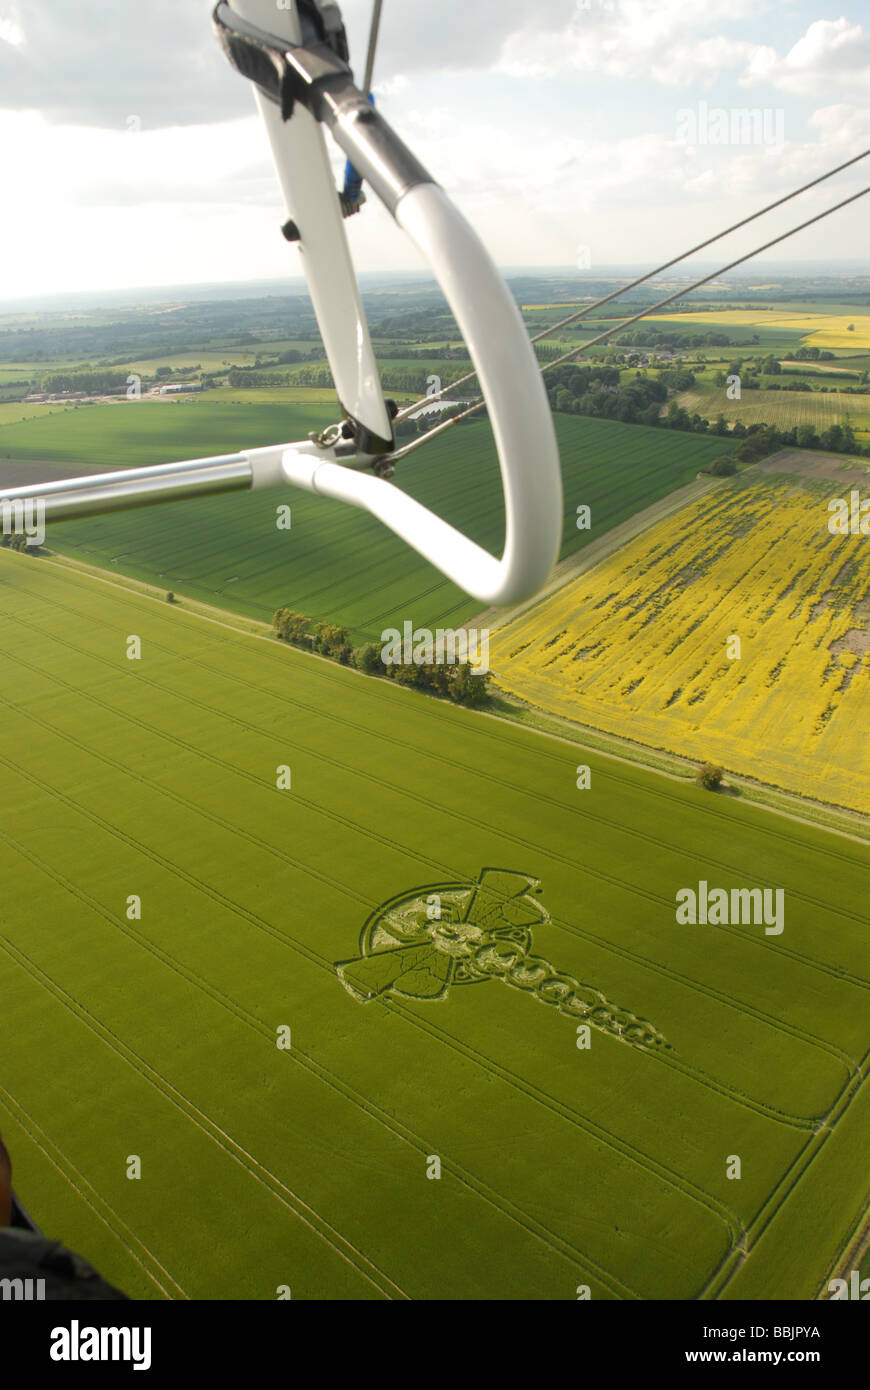 Aerial shots of the 2009 Yatesbury Dragonfly Crop Circle, from microlight, controls and horizon visible. - Stock Image